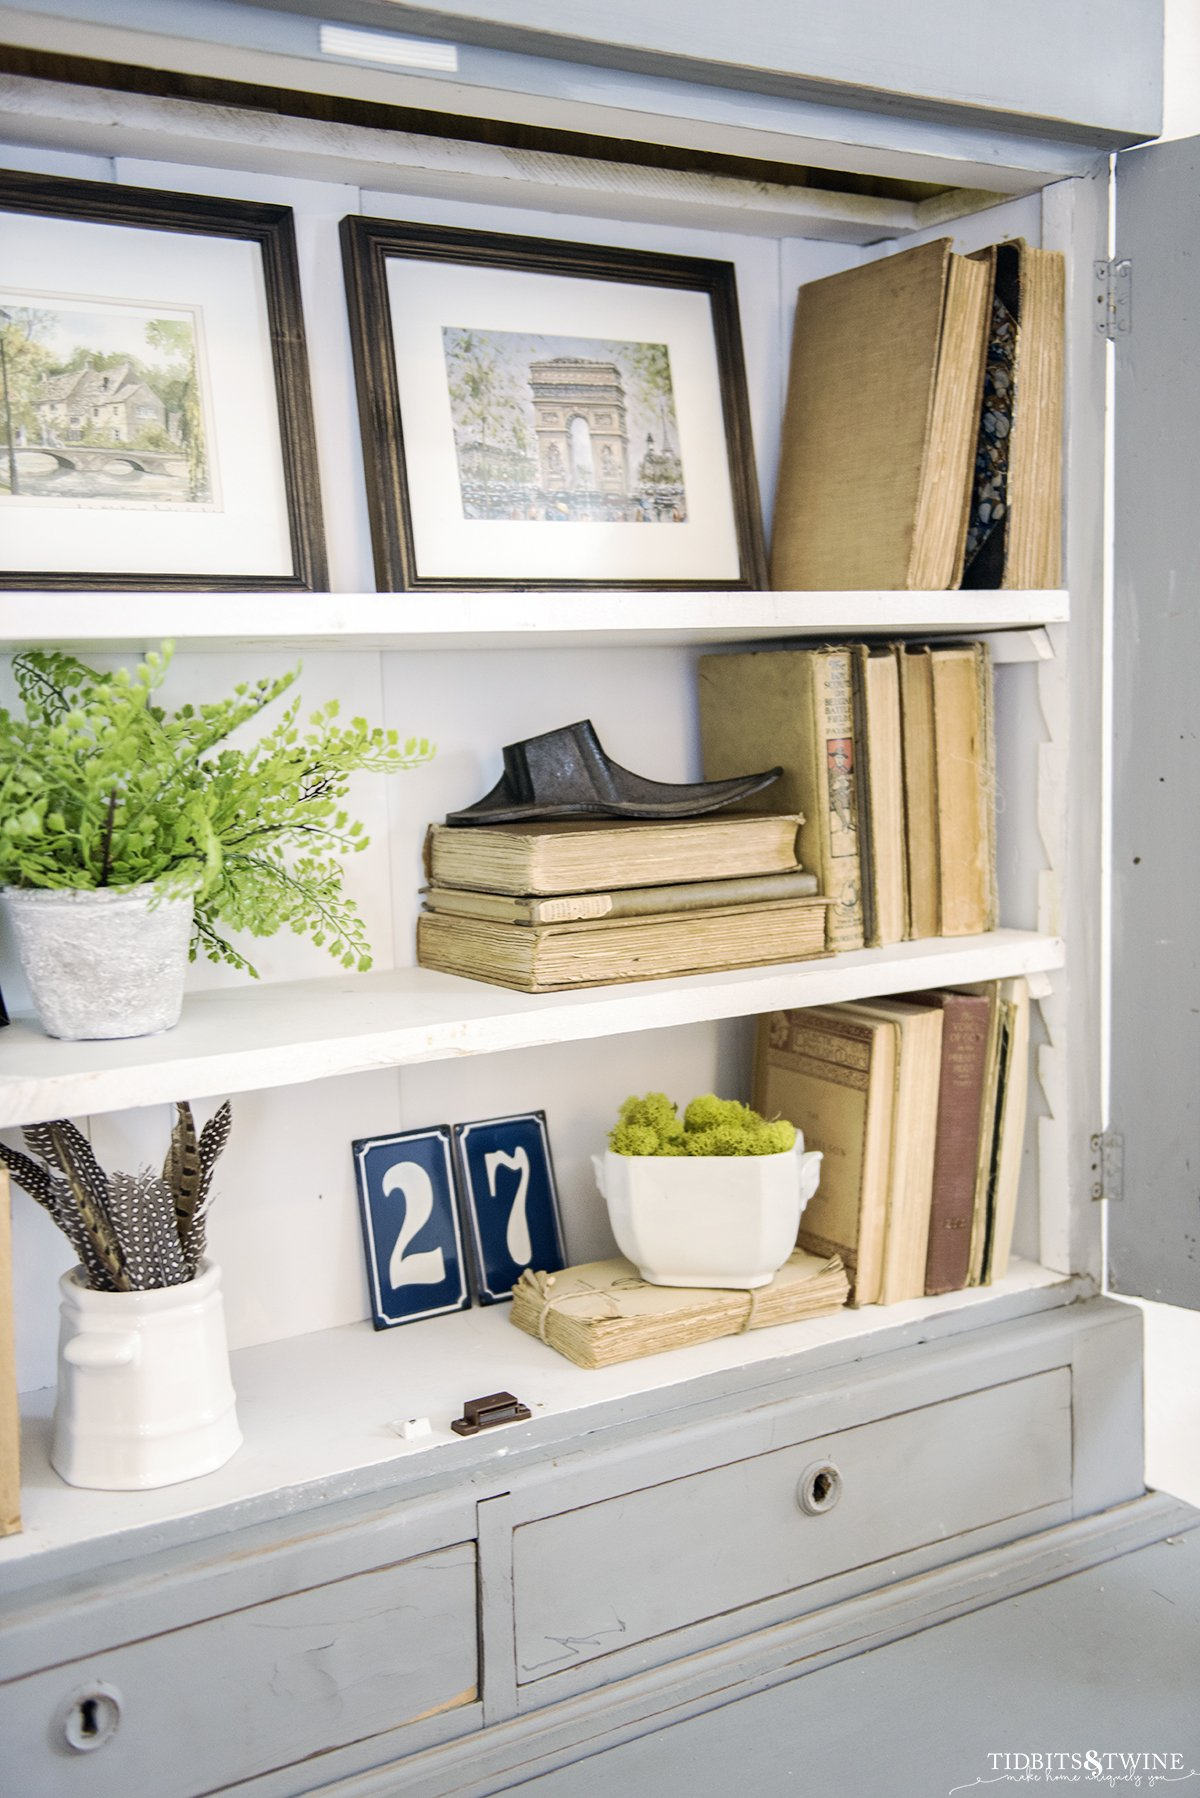 An antique blue French cabinet styled with books and art